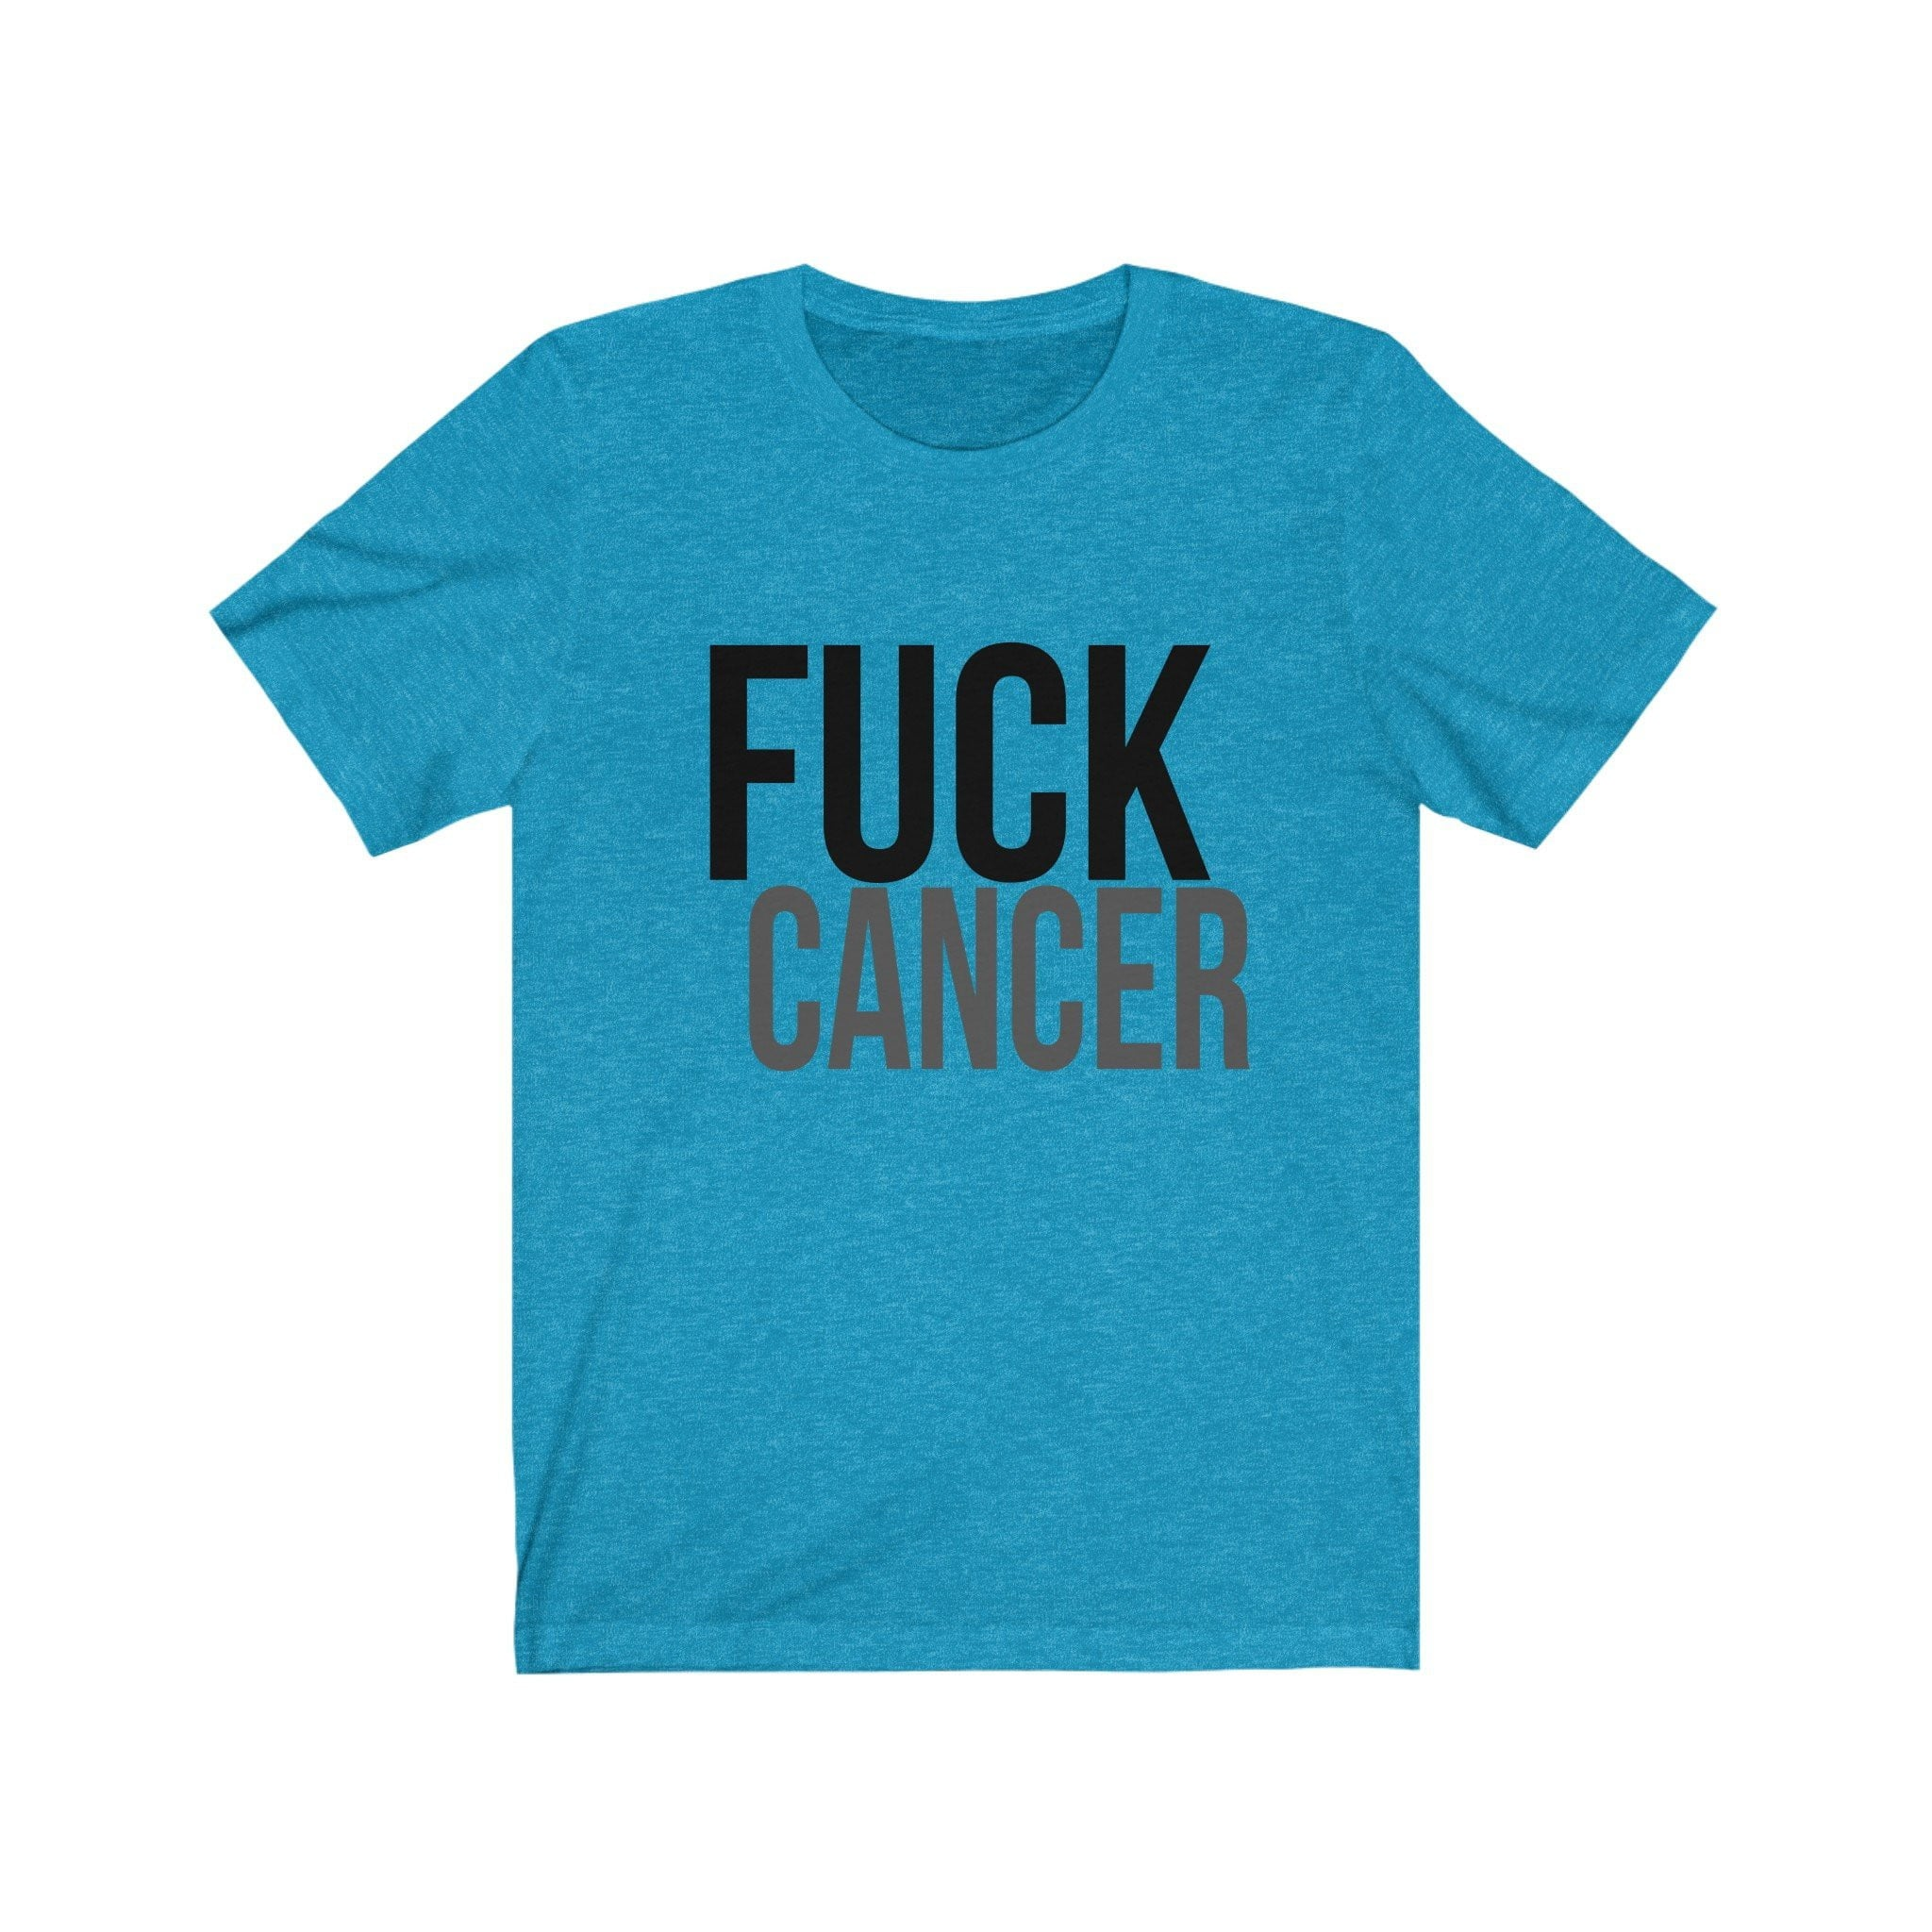 Fuck Cancer - Breast Cancer Awareness - Breast Cancer Shirt - Multiple Colors and Styles